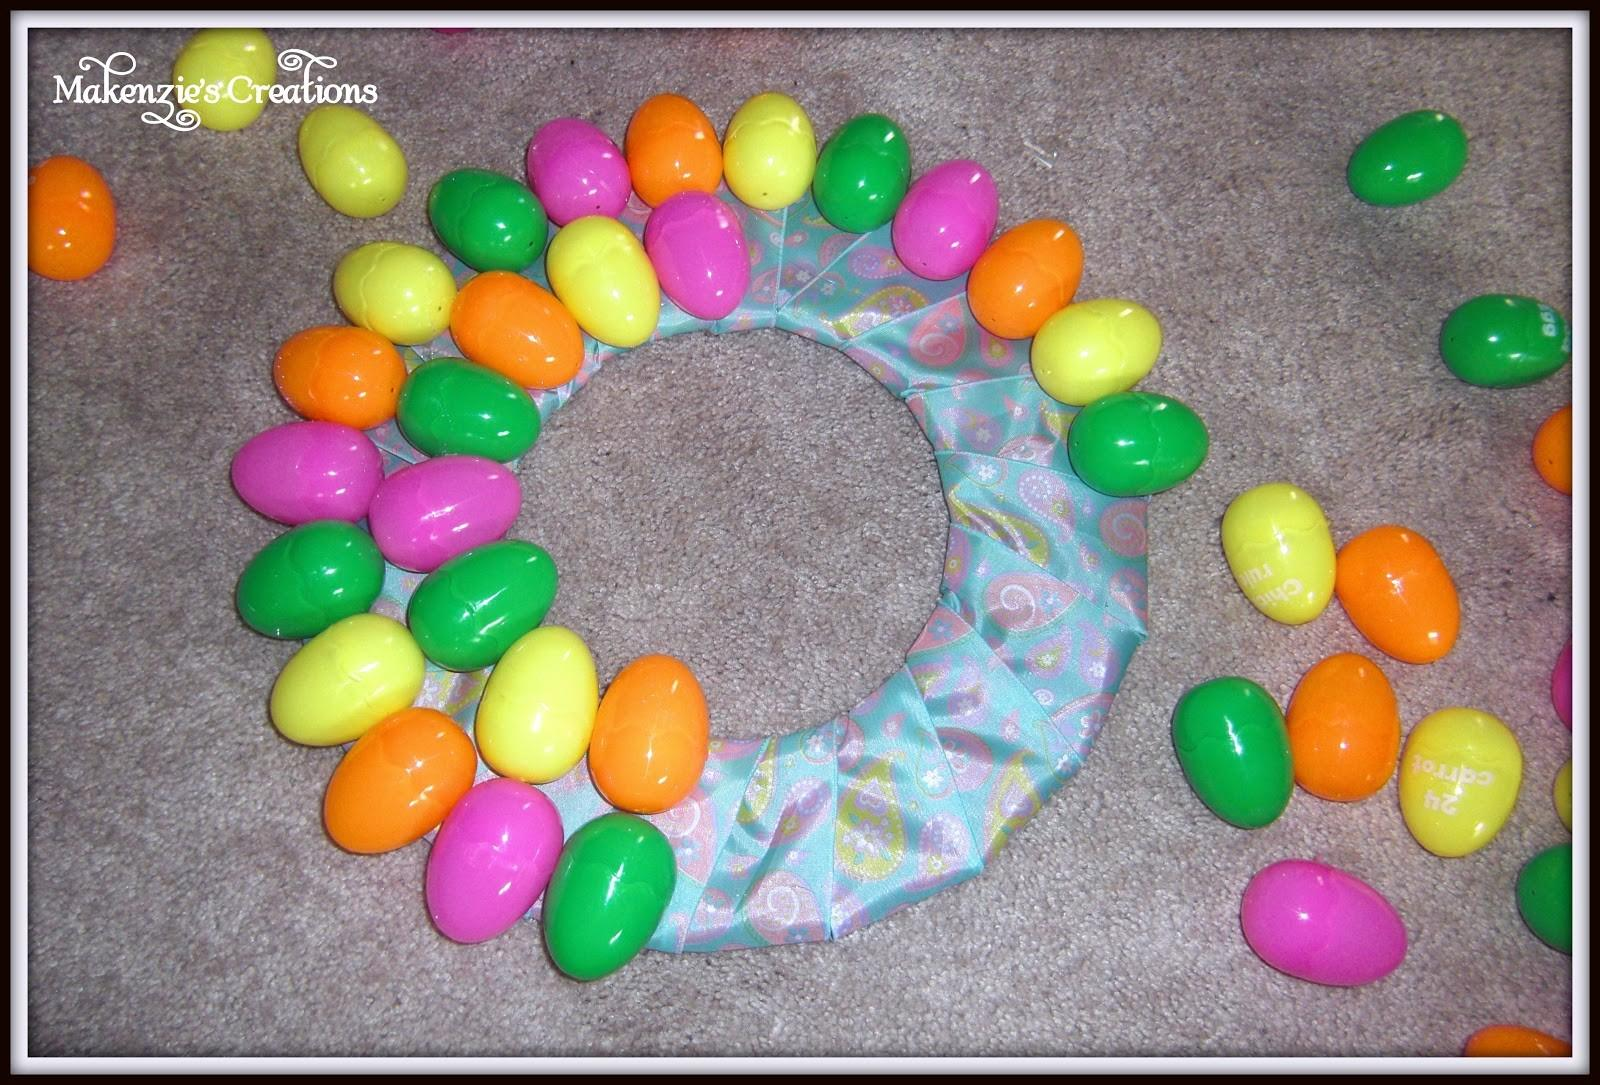 Makenzie Creations Diy Easter Egg Wreath